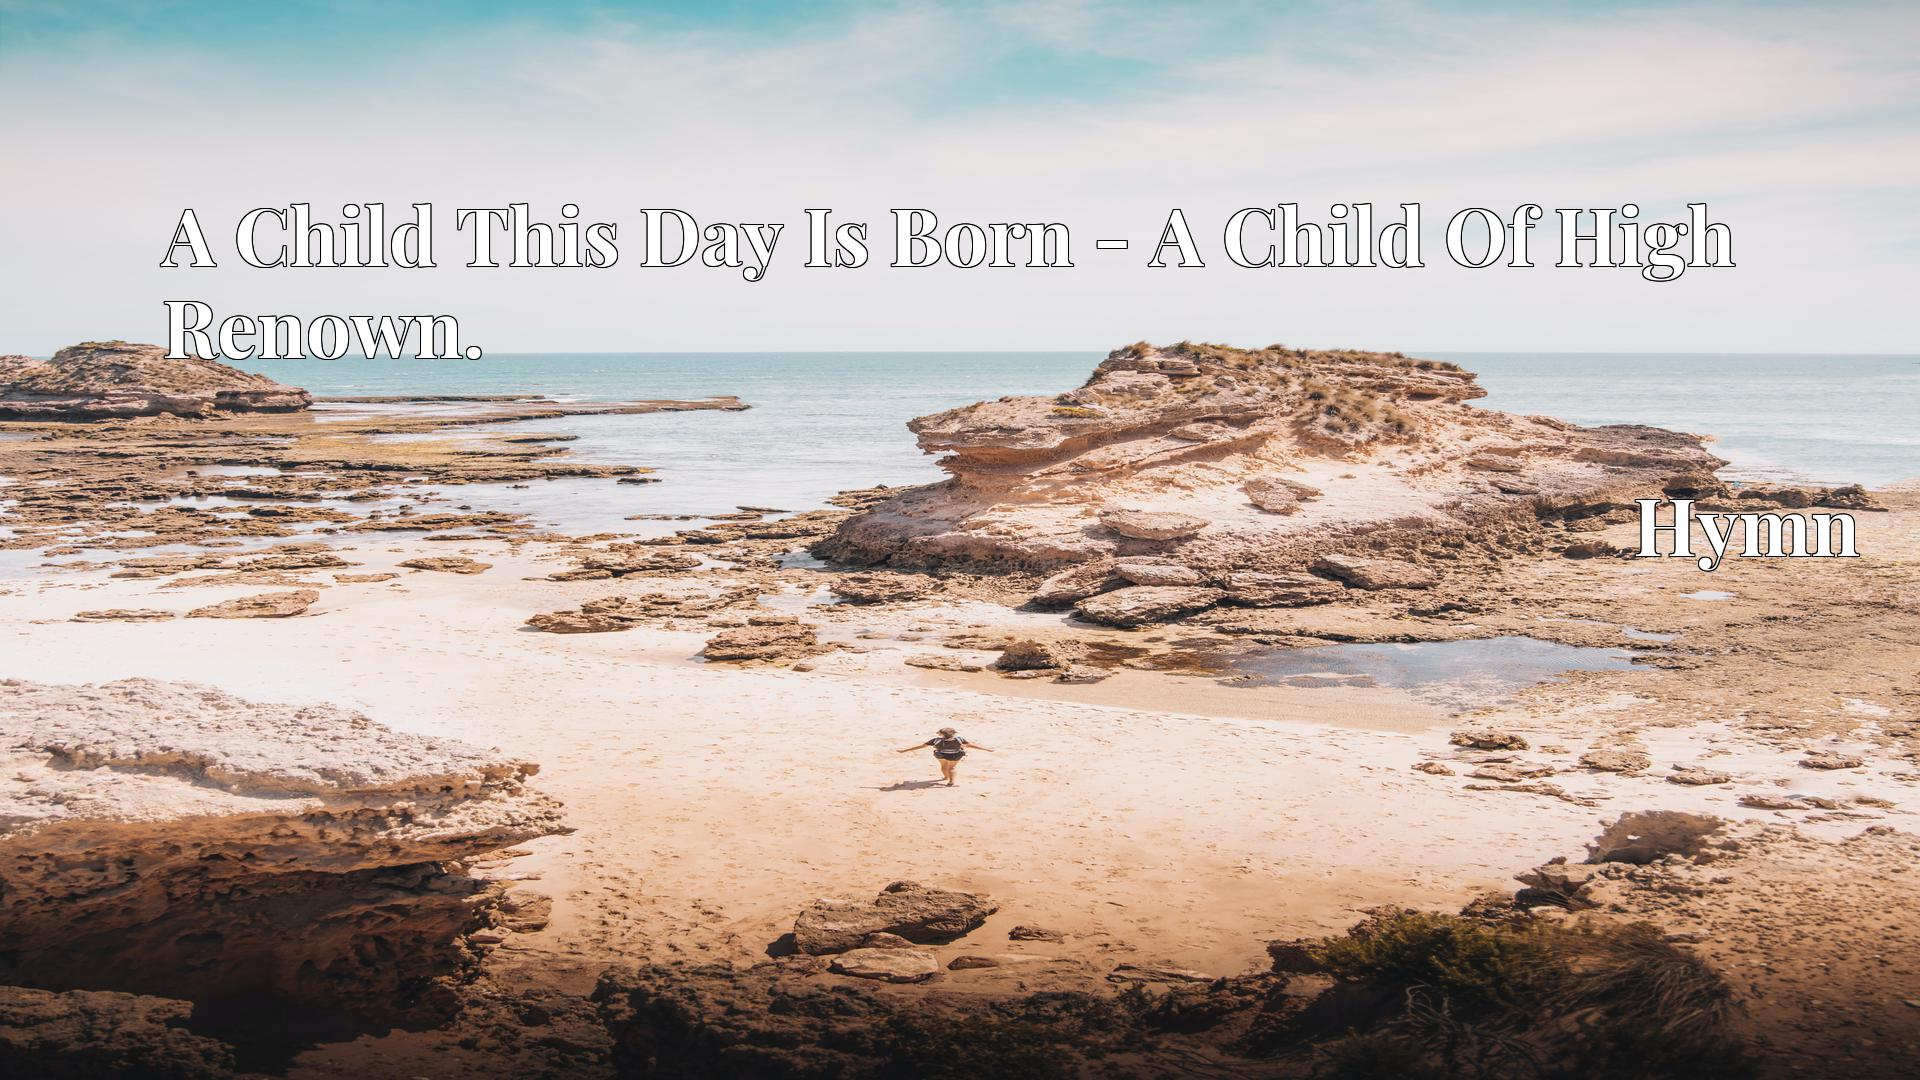 A Child This Day Is Born - A Child Of High Renown. Hymn